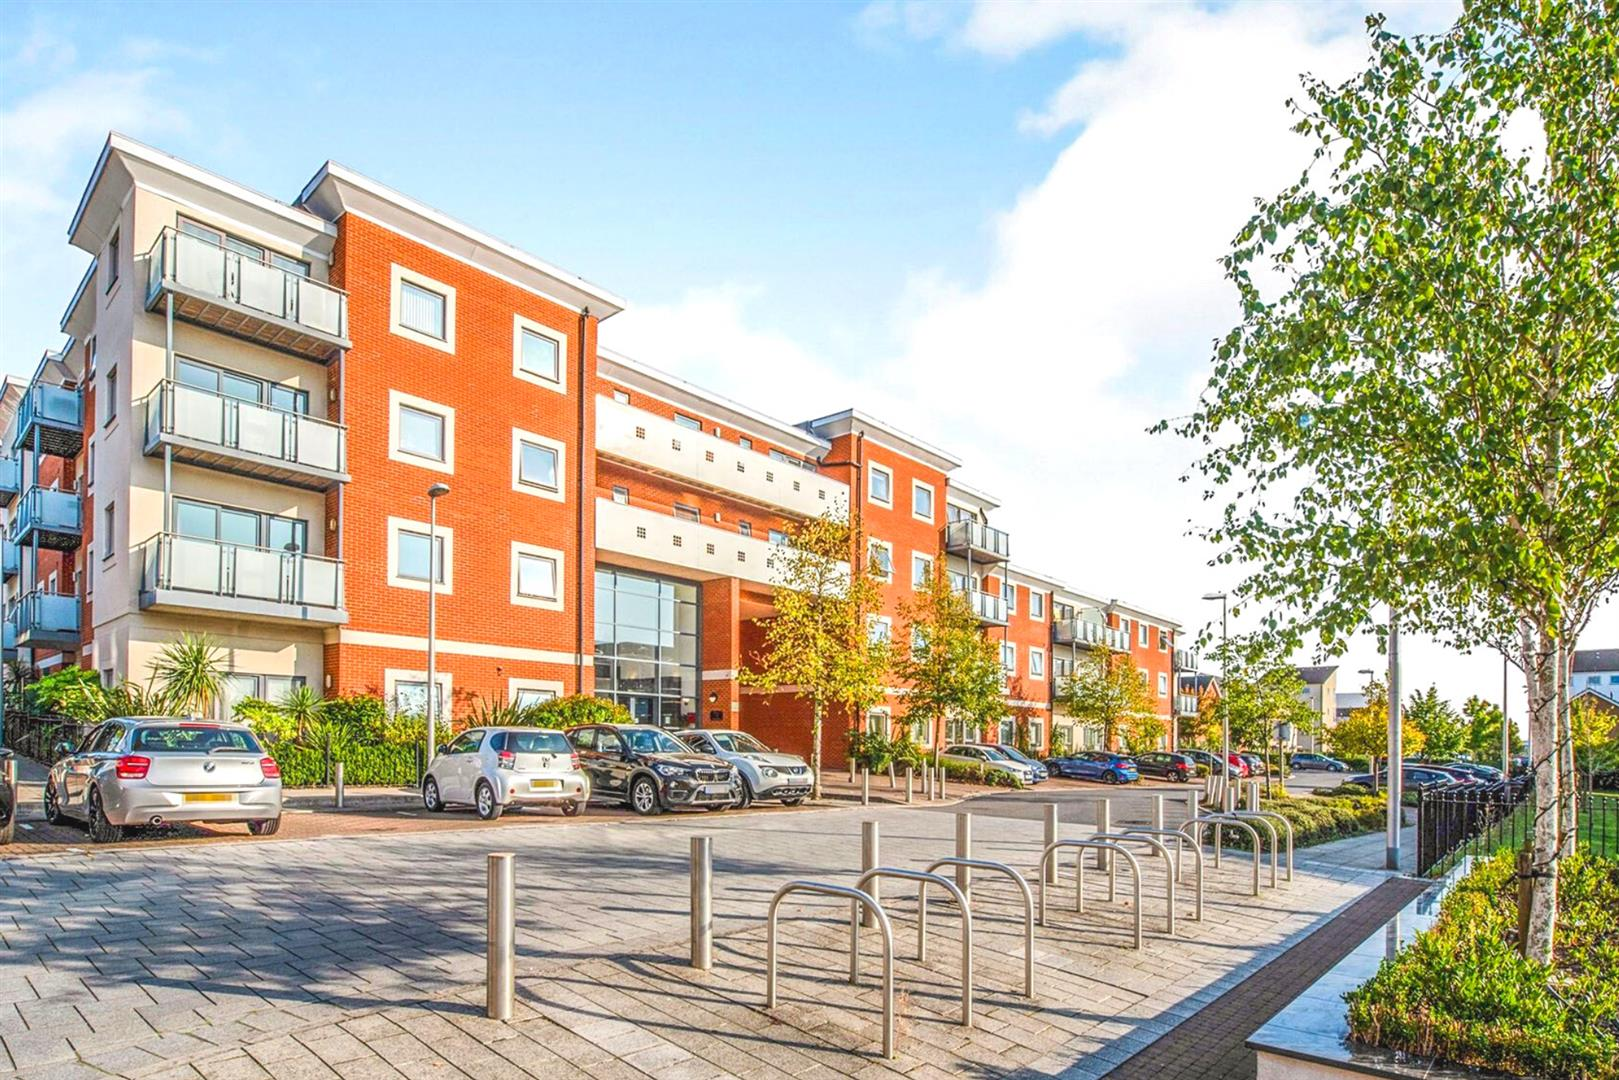 2 bed apartment for sale, RG2